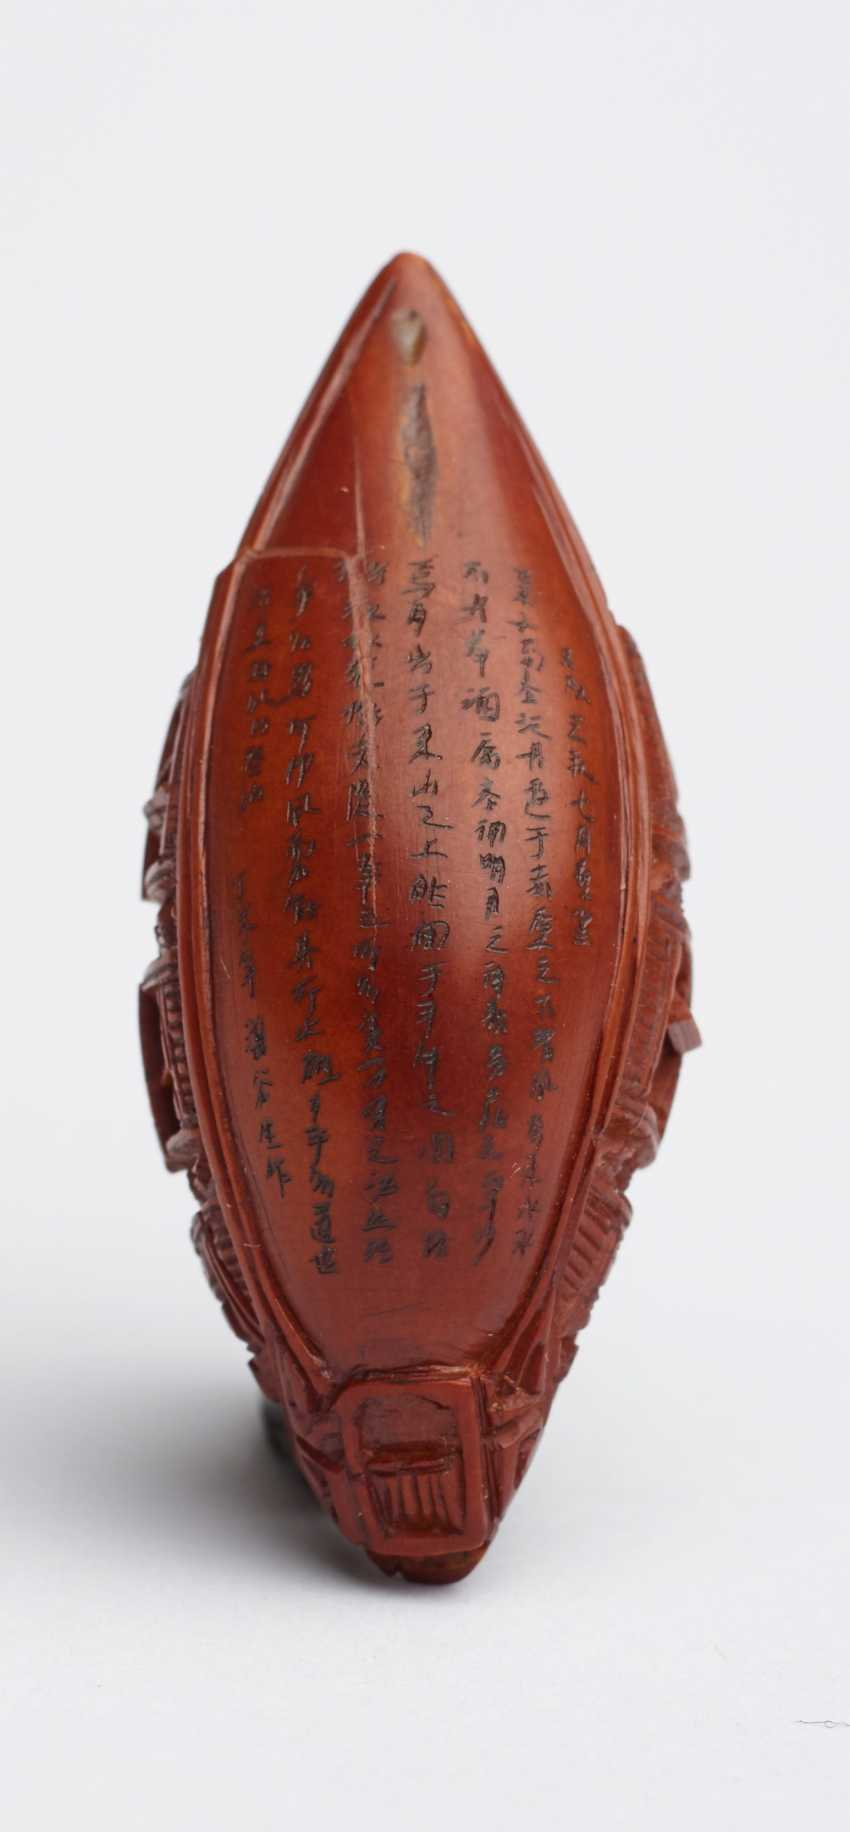 ZHAN GUSHENG: MINIATURE WORK OF COVERED BOAT WITH PASSENGERS AND LONG POEM - photo 3